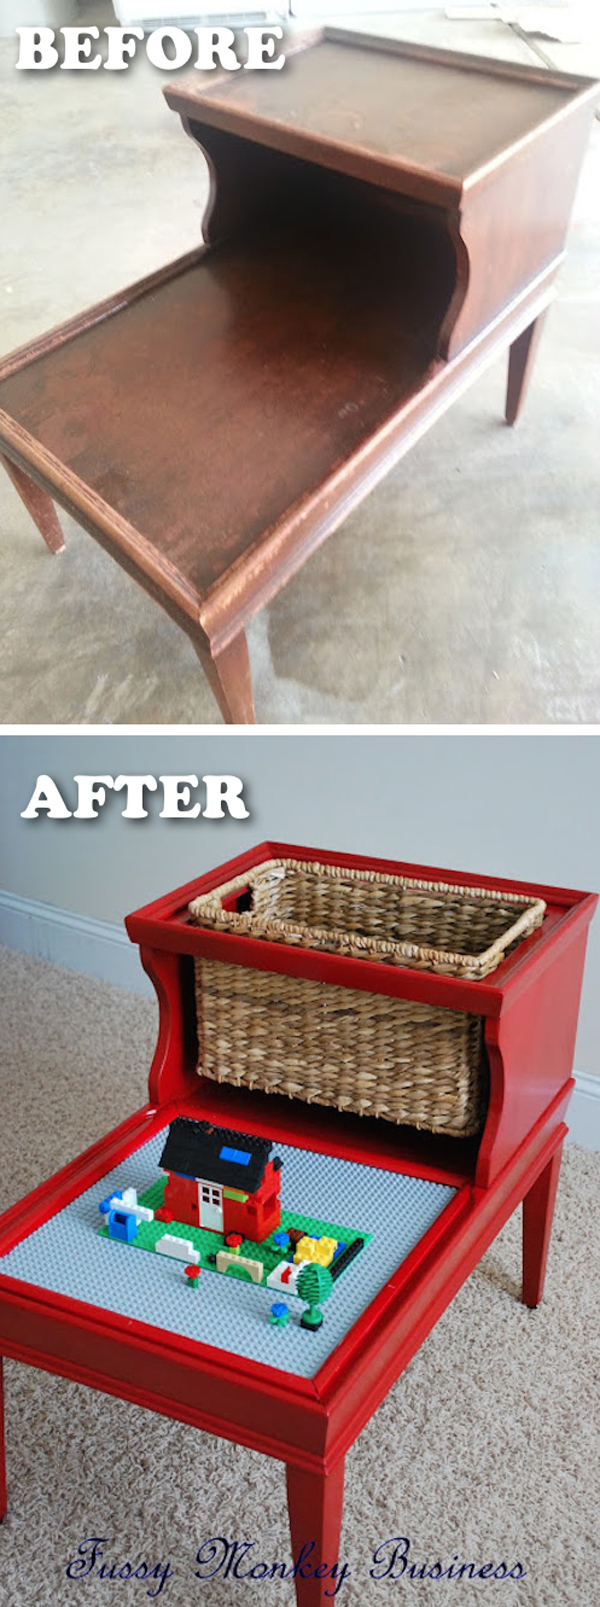 Recycle Furniture 15 Easy Recycled Diy Furniture Hacks Home Design And Interior